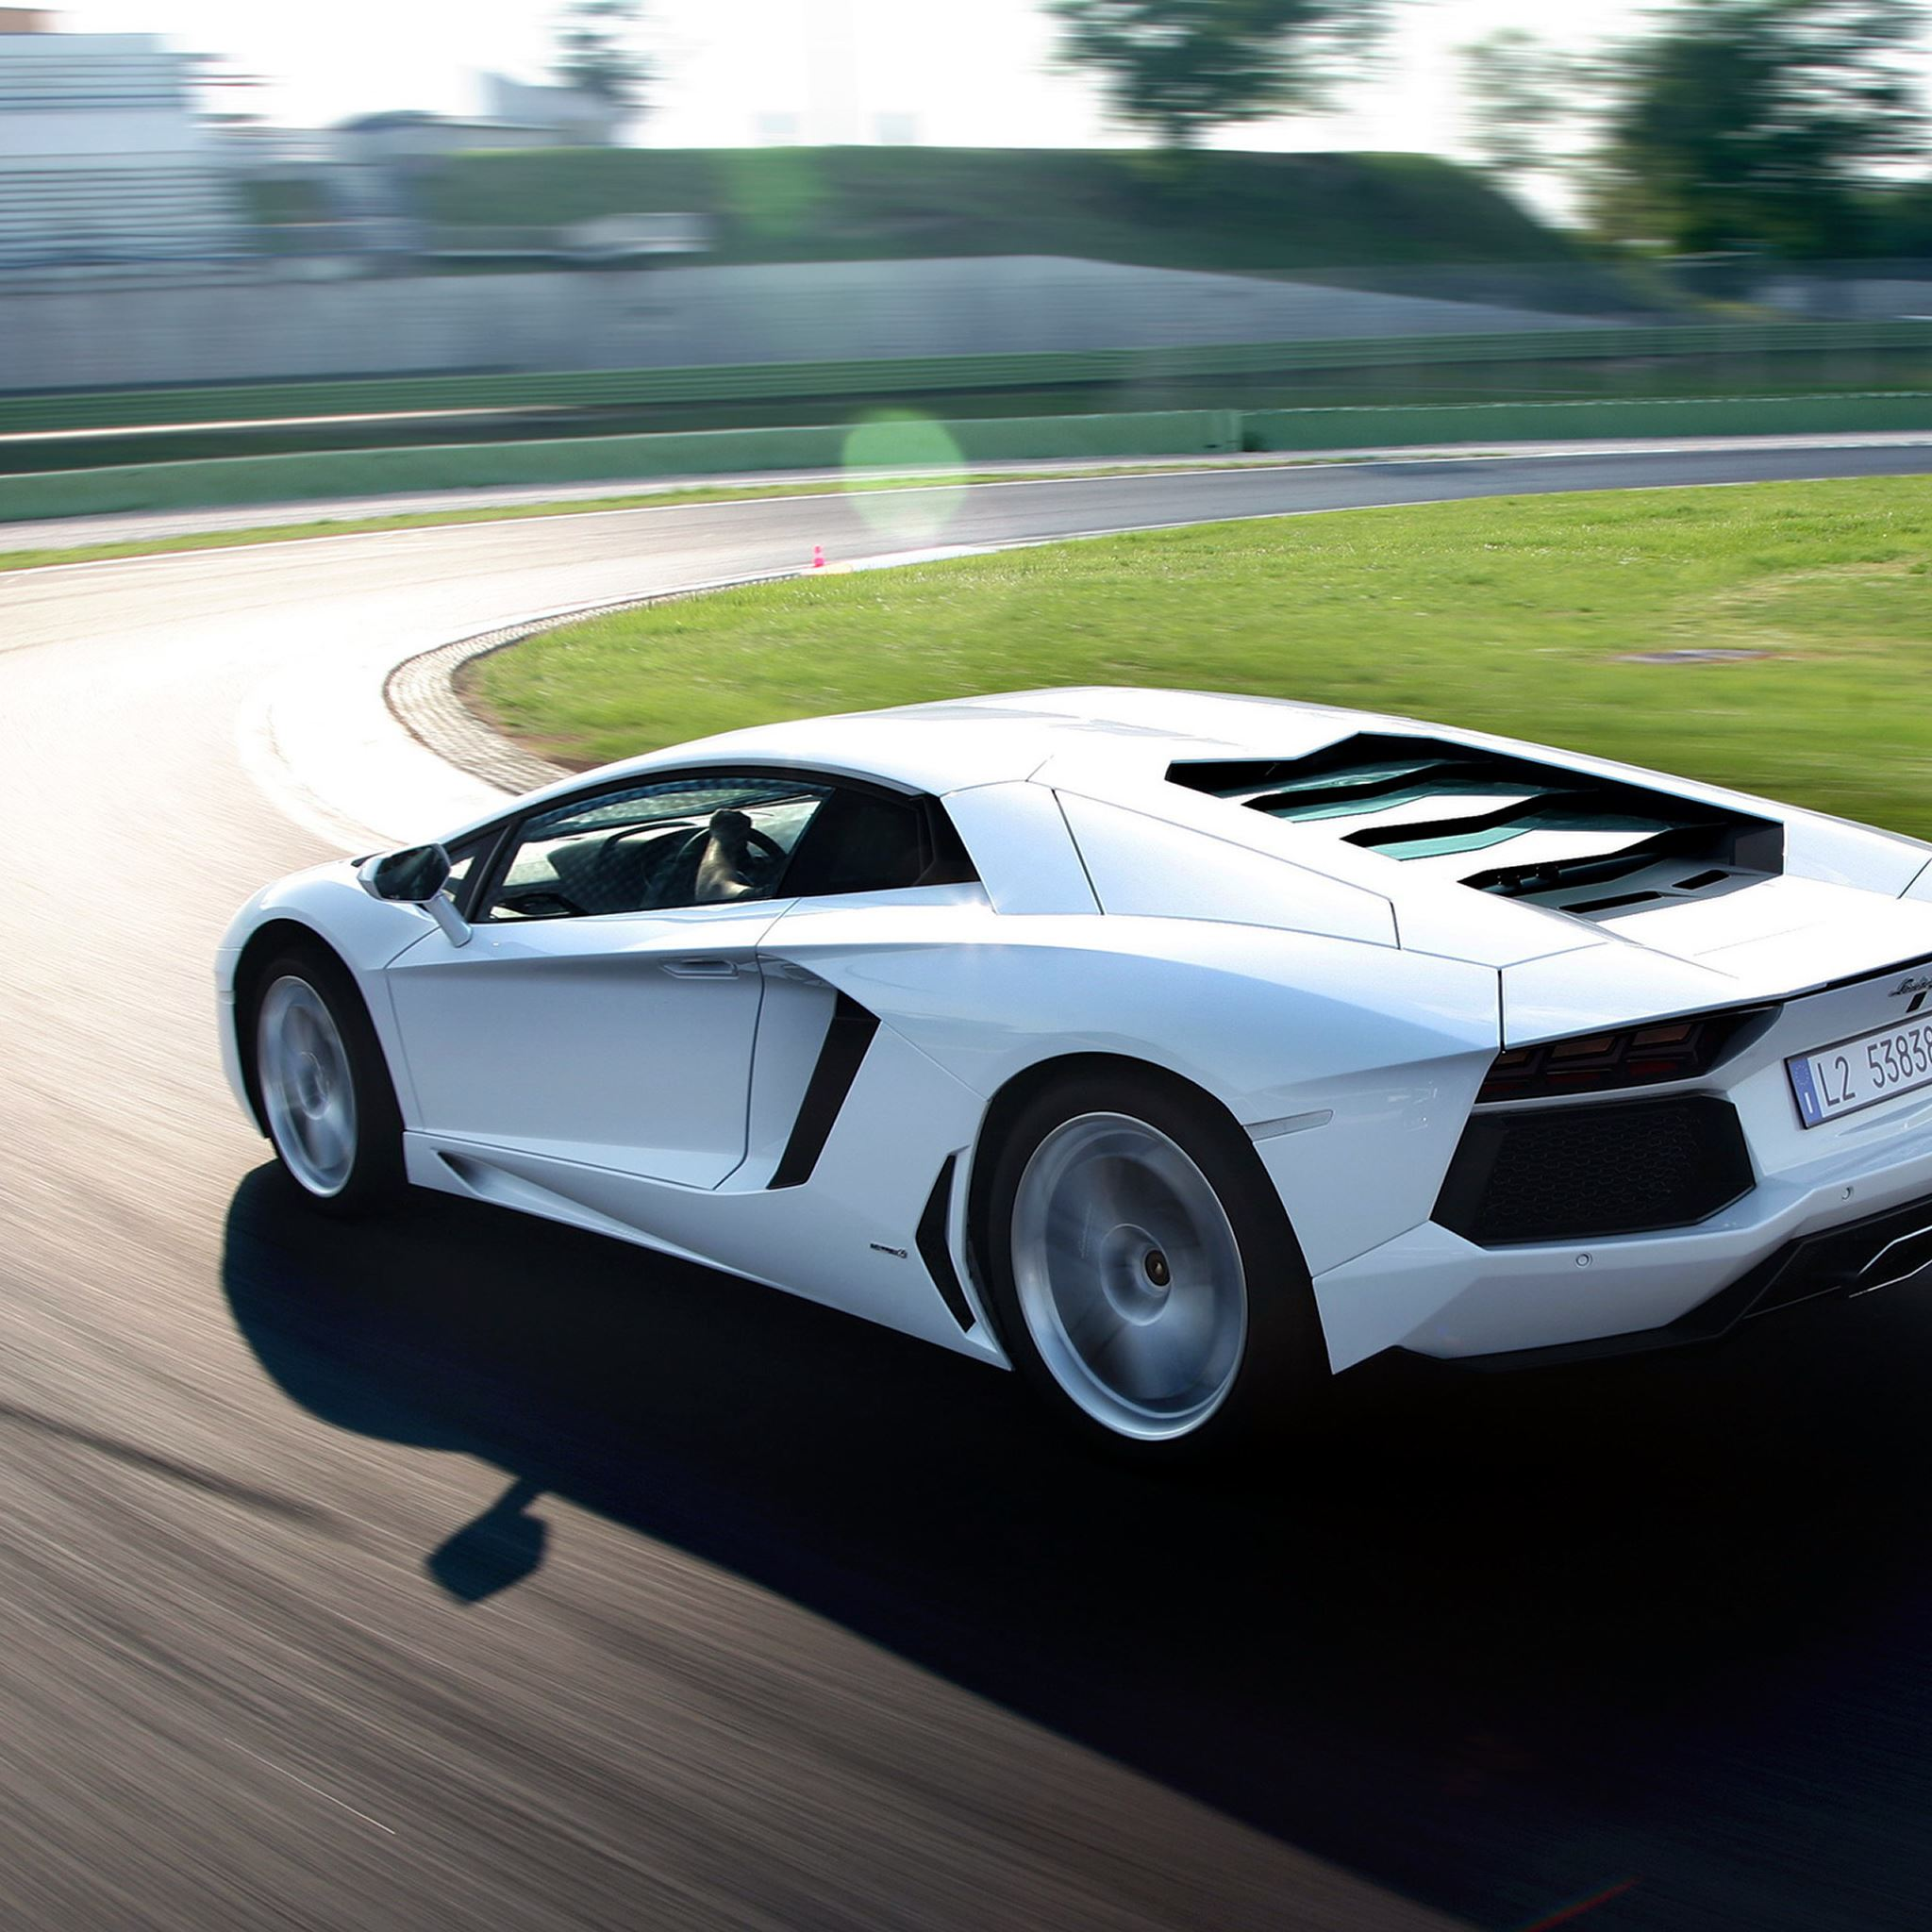 Lamborghini Aventador iPad Air wallpaper